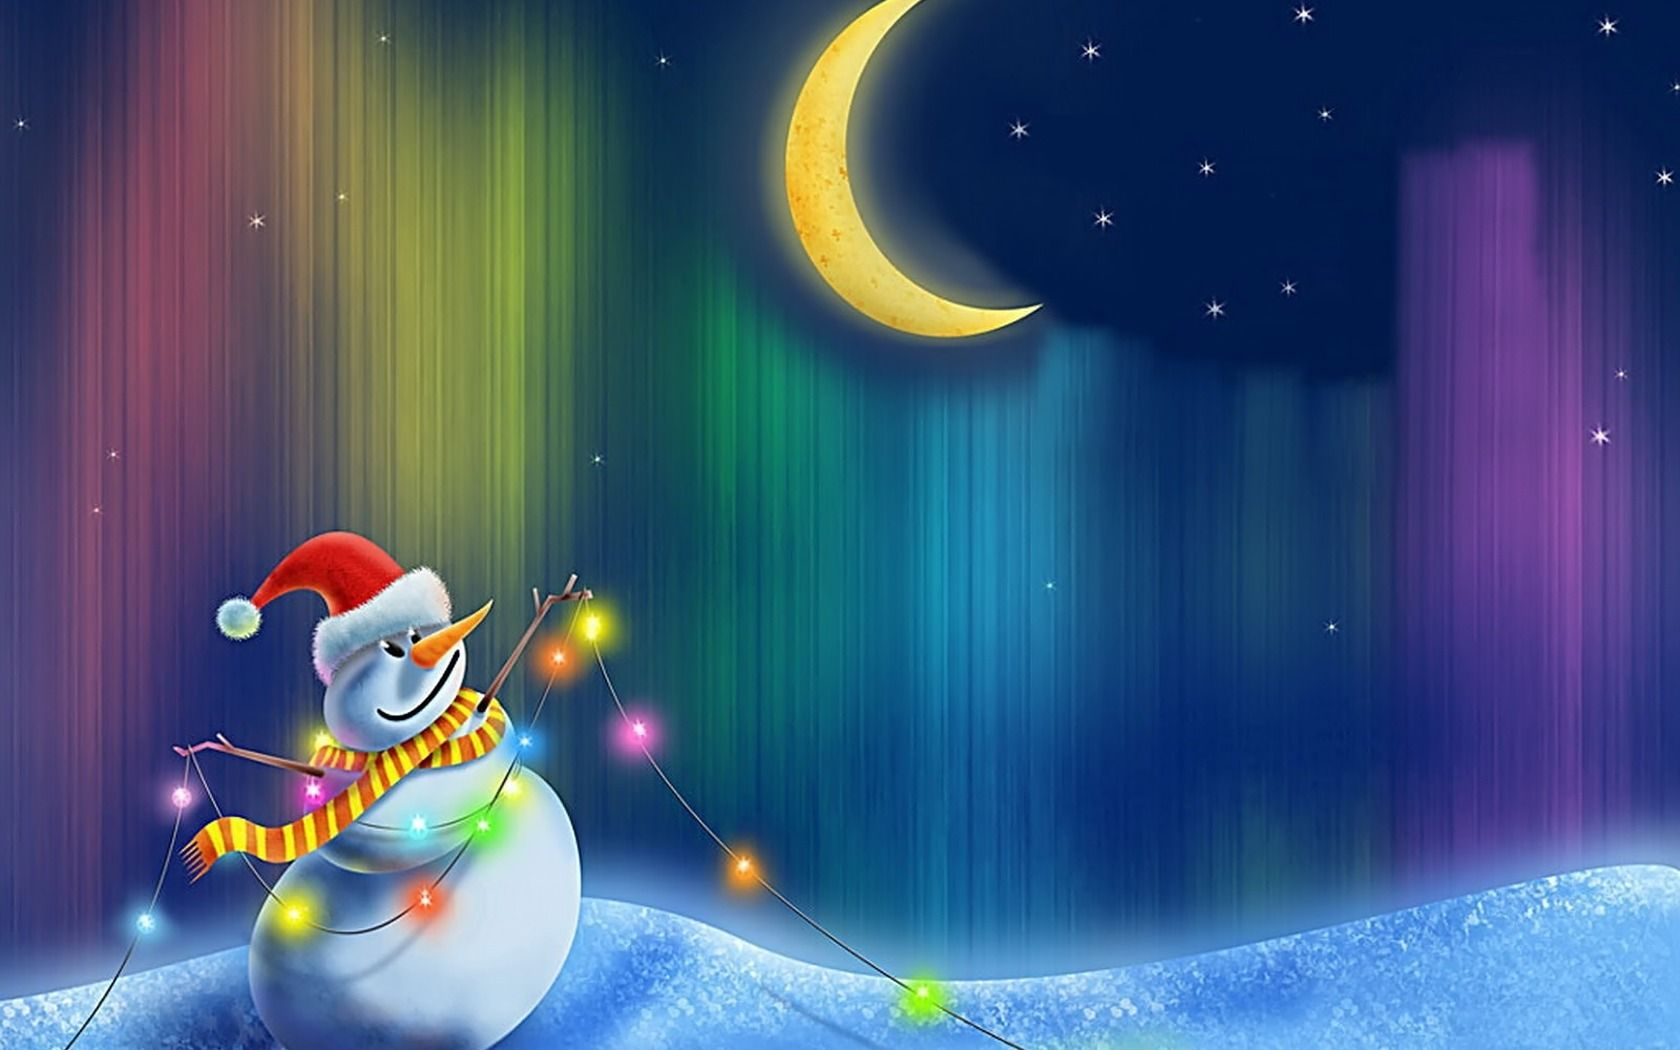 free wallpaper screen savers Christmas Wallpapers And 1680x1050